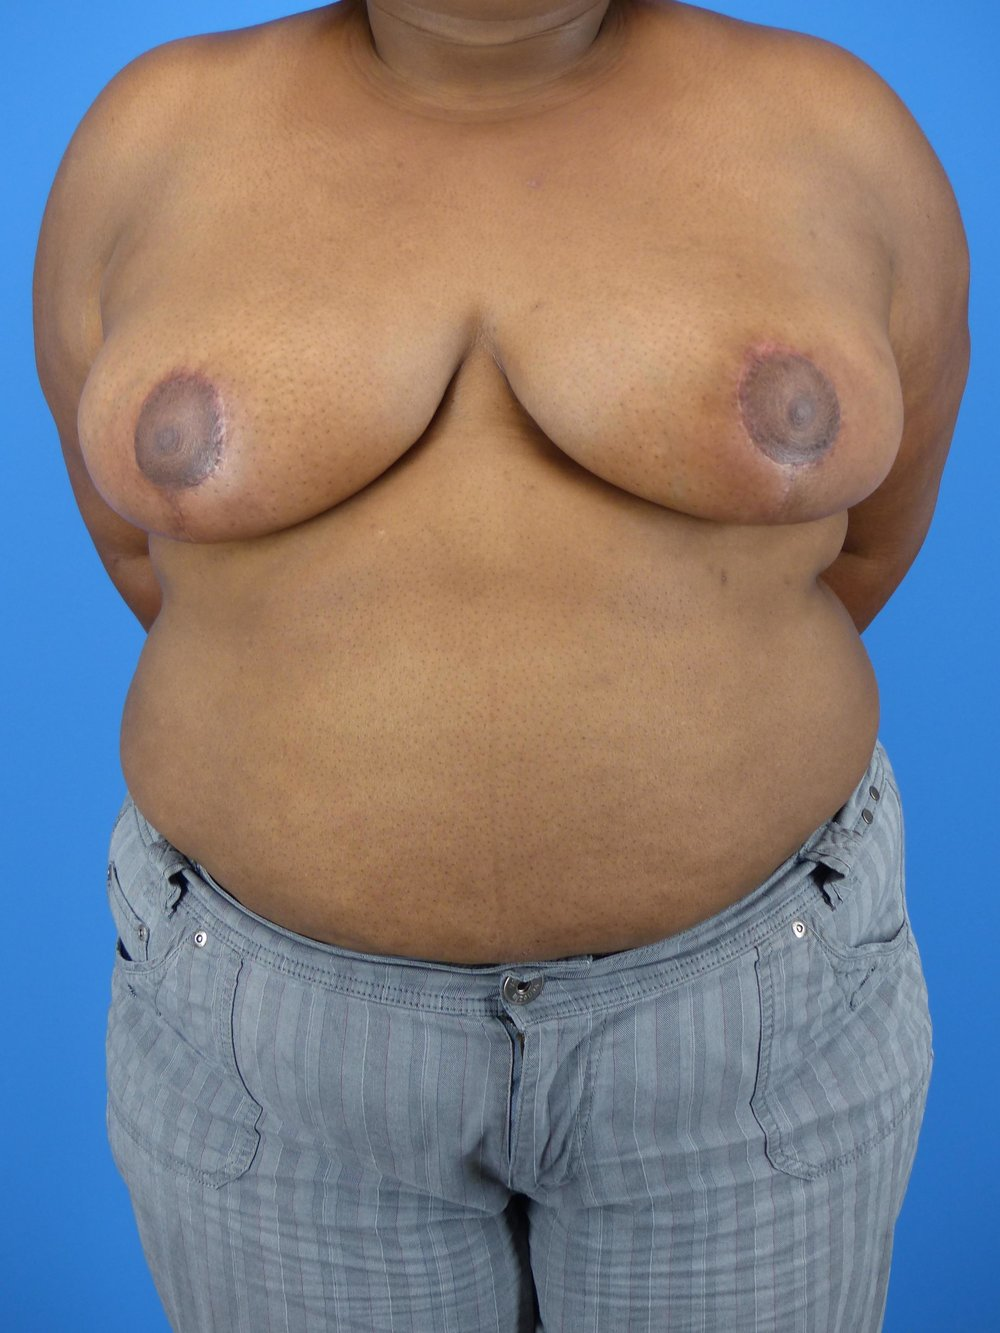 breast-reduction-before-and-after.jpg